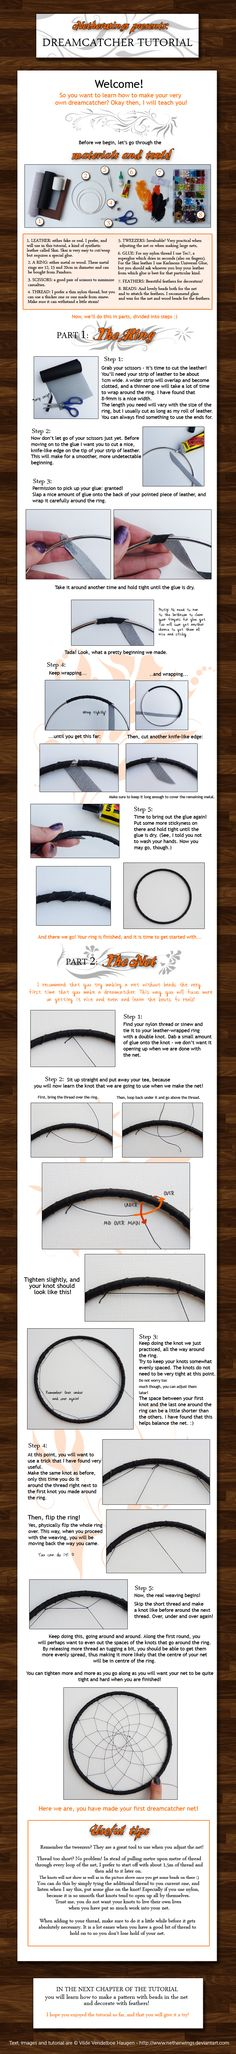 Dreamcatcher tutorial: Ch. 1 by ~netherwings on deviantART